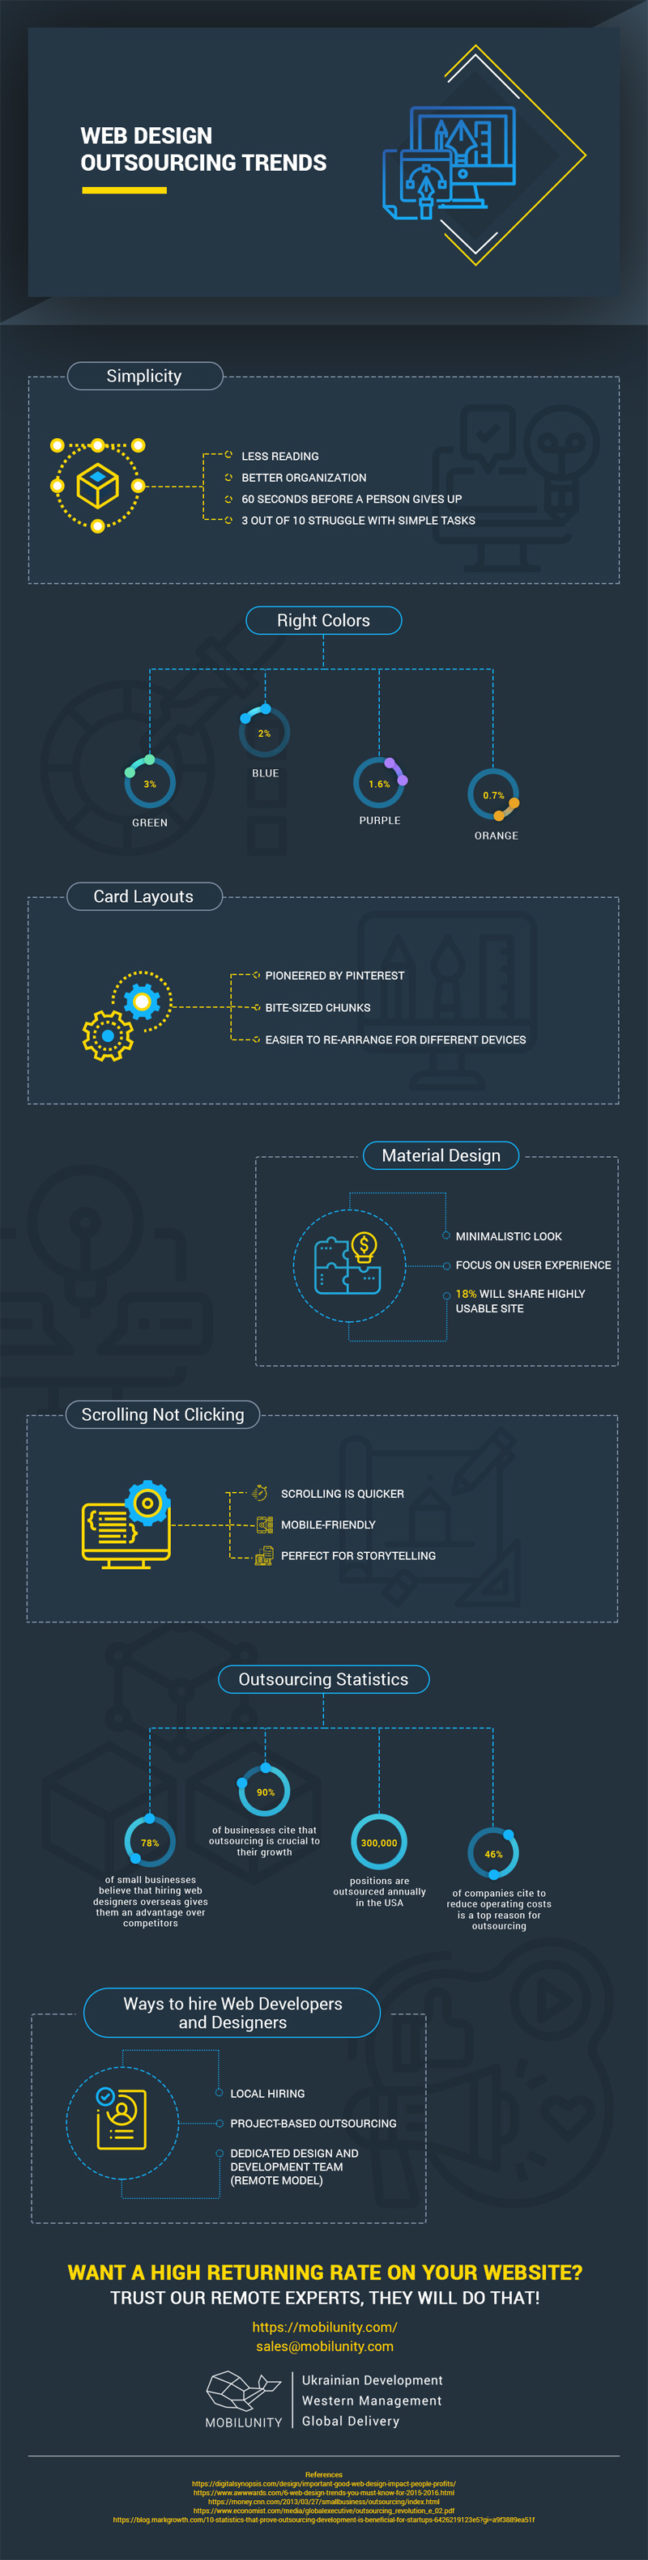 web design outsourcing trends infographic